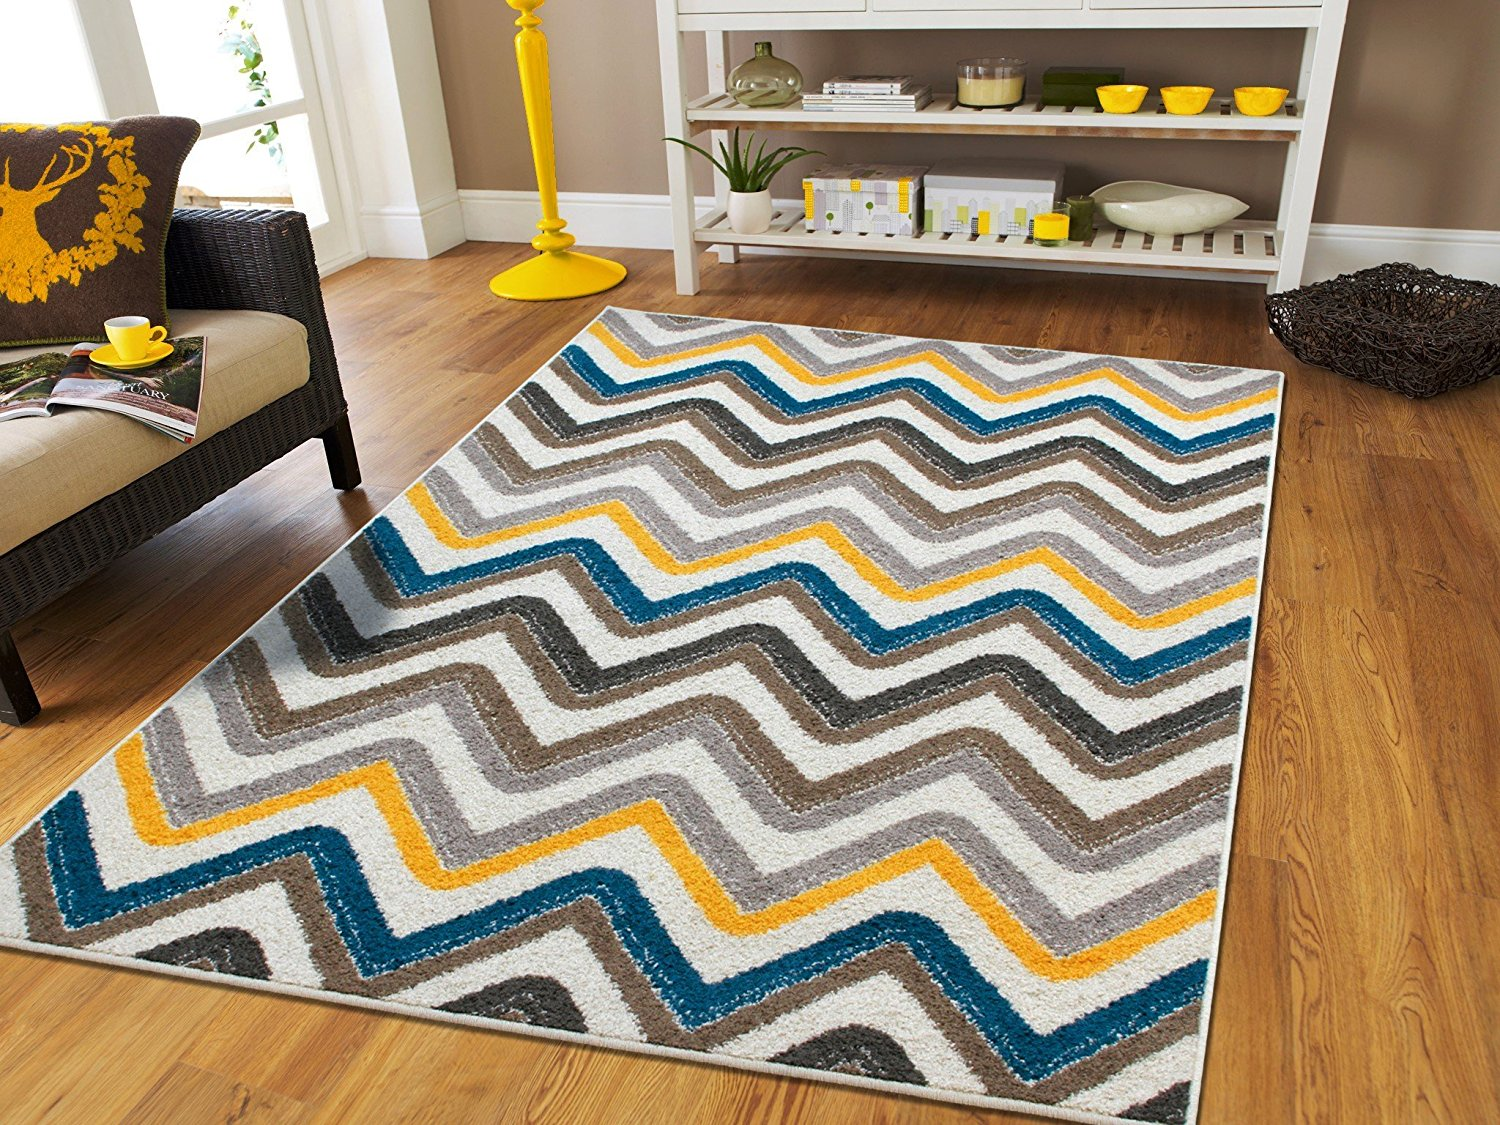 ... 5x7 Rug. Product Image. New Fashion Luxury Chevron 5x8 Large Rugs For  Living Room Gray Cream Blue Yellow Brown Washable